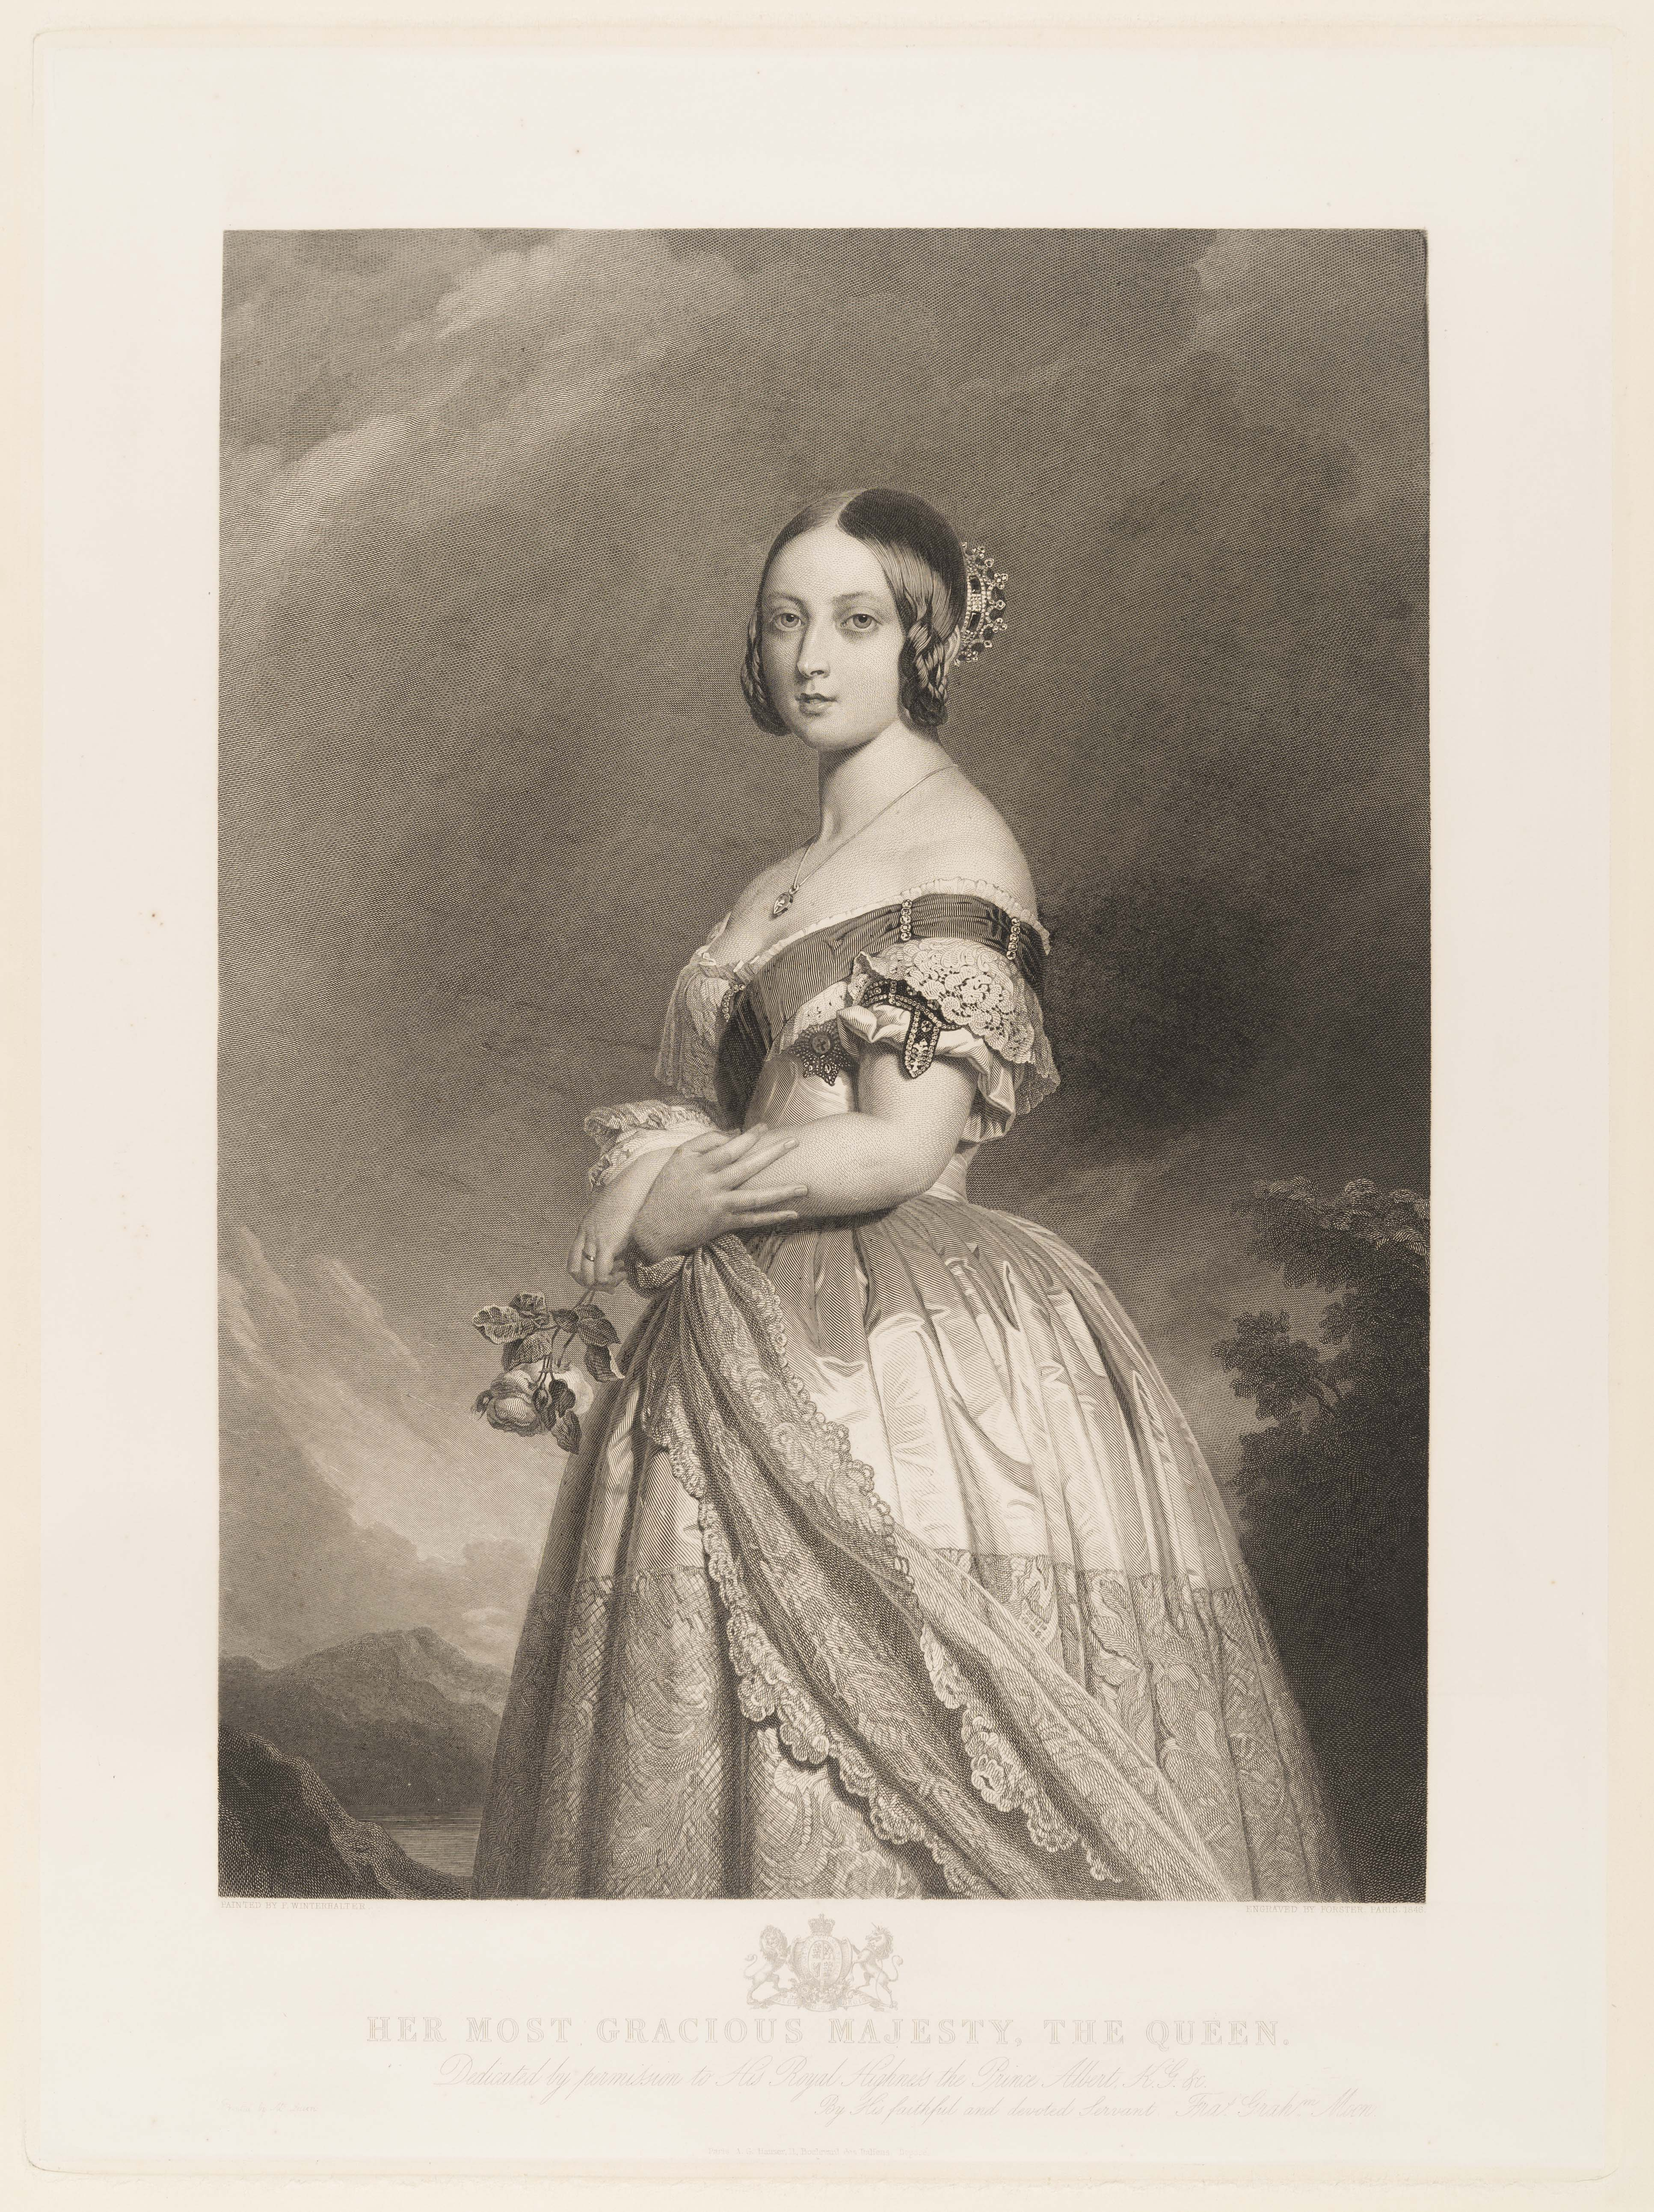 Queen Victoria, Francois Forster, 846, after Franz Xaver Winterhalter(1805-73)